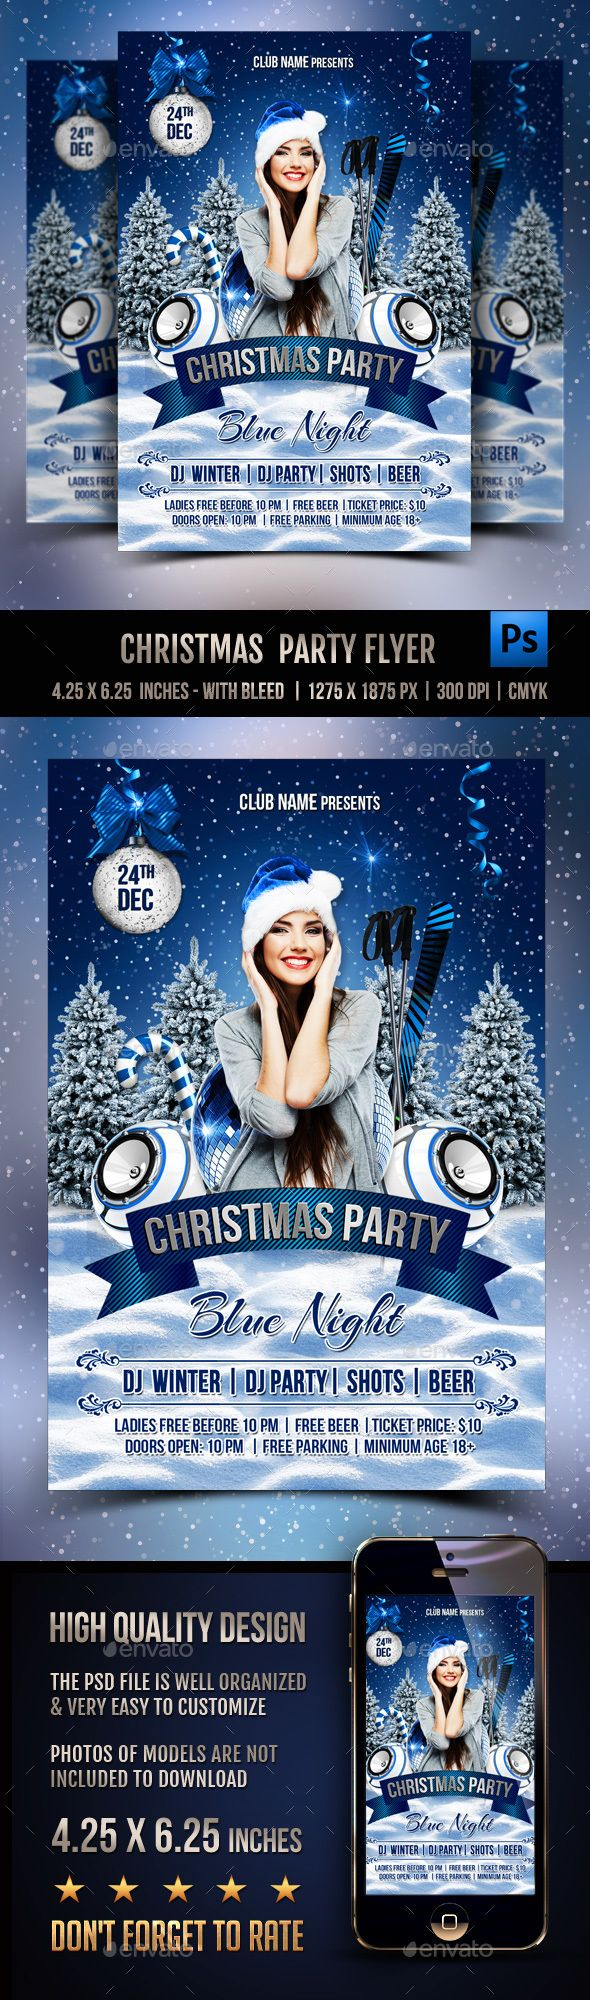 Christmas Party Flyer Template PSD #design #xmas Download: http://graphicriver.net/item/christmas-party-flyer/13454607?ref=ksioks